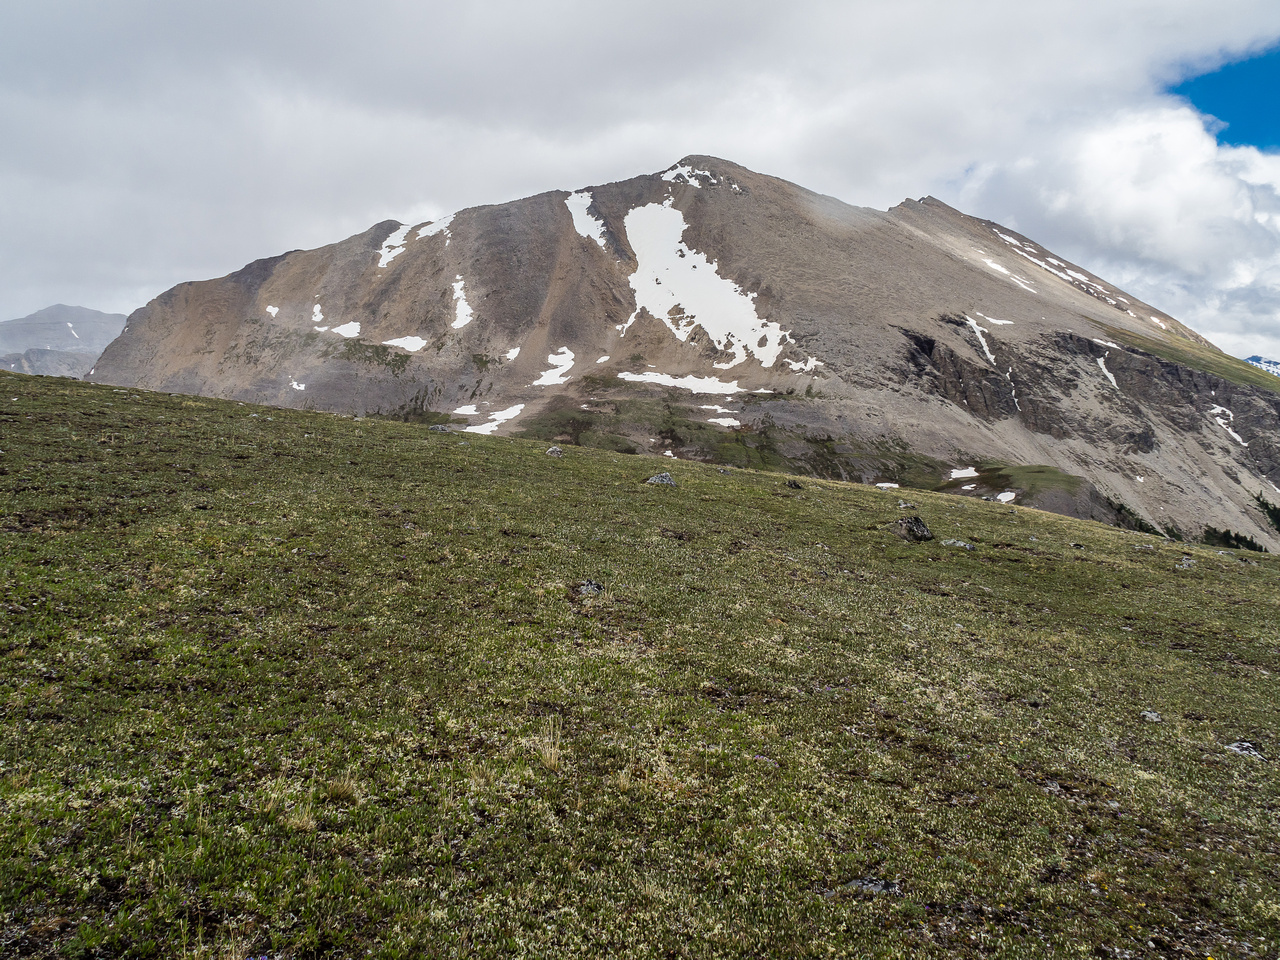 Golden Mountain stretches out from Fatigue Pass. We'll go out of sight to our left before finding an ideal bivy site.